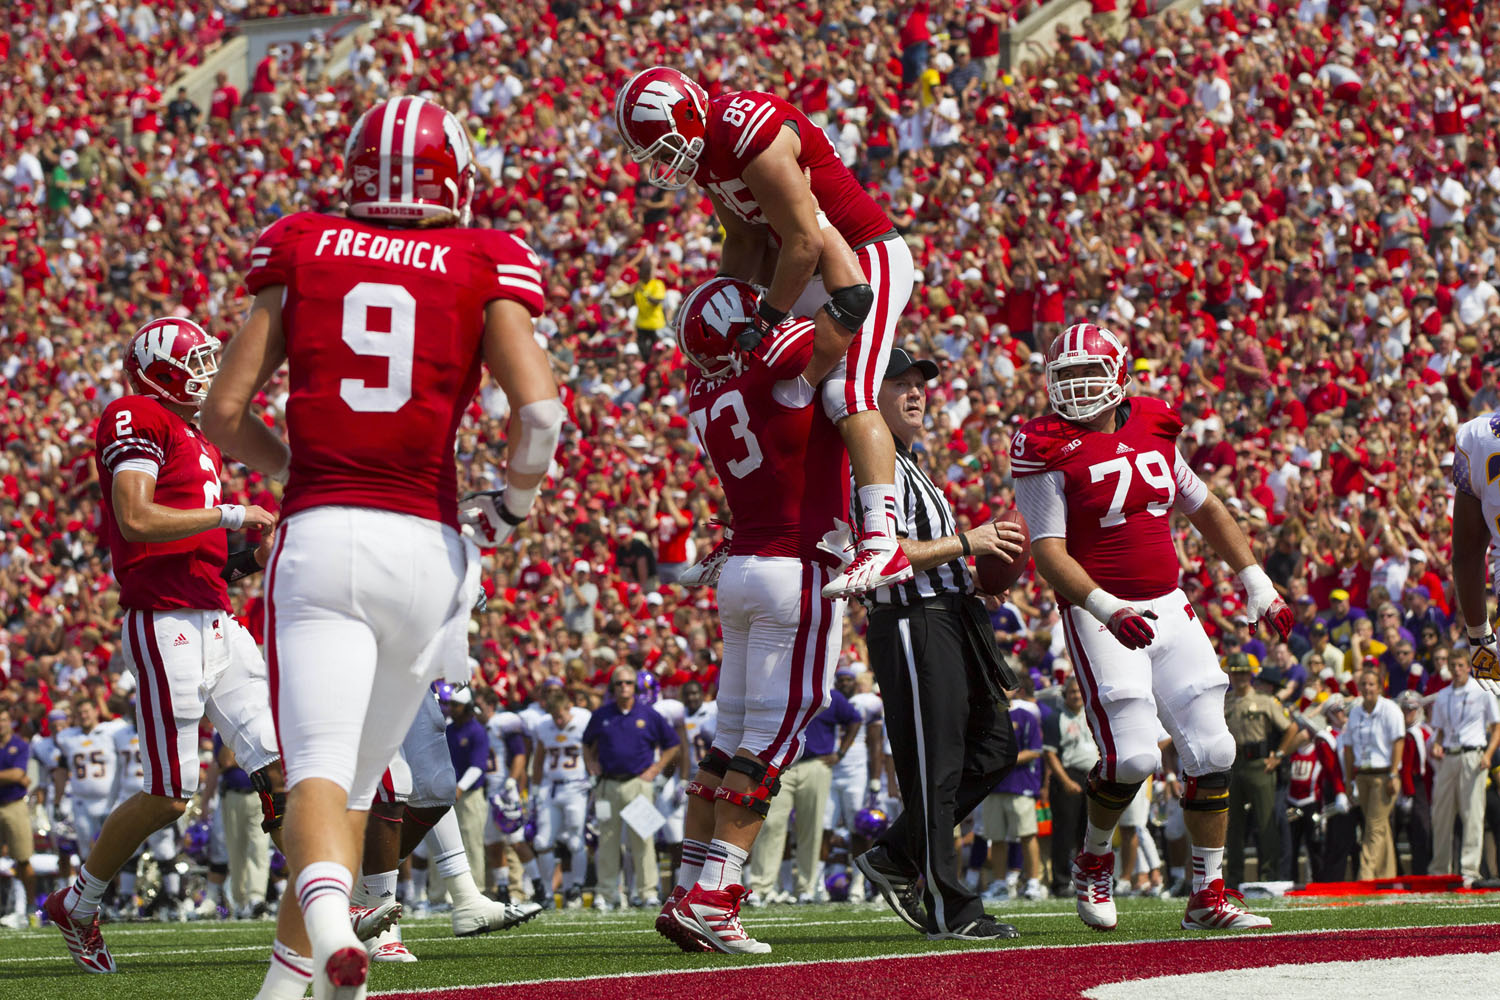 Wisconsin Badgers tight end Brian Wozniak (85) celebrates a touchdown catch during the second quarter against the Tennessee Tech Golden Eagles at Camp Randall Stadium. (Jeff Hanisch/USA TODAY Sports)